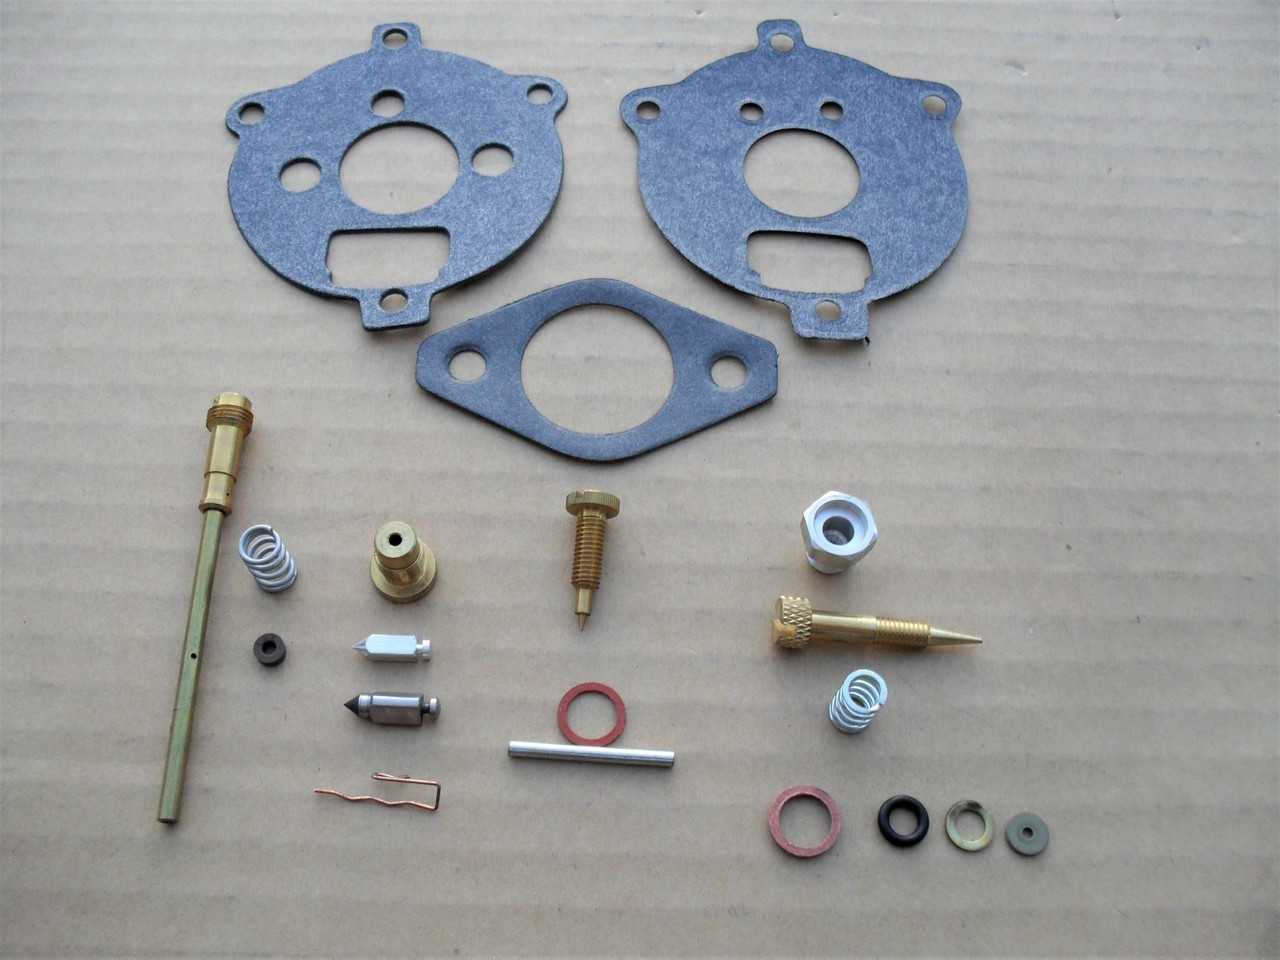 Carburetor Rebuild Kit for Briggs and Stratton 7 HP, 8 HP, 291763, 295938,  394693, Made In USA, repair overhaul &